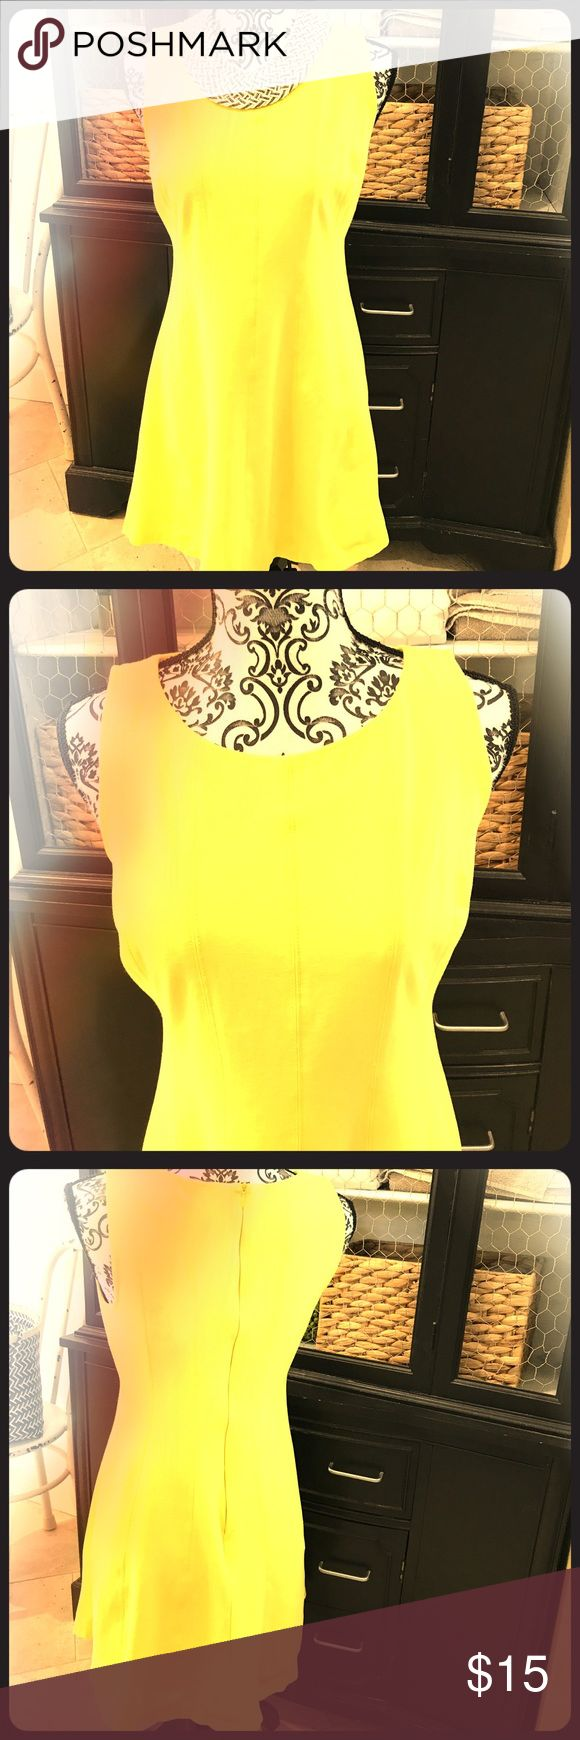 Ann Taylor yellow sundress This bright and cheery yellow sundress from Ann Taylor is a perfect spring dress for any occasion! Dress it down for a casual Saturday or dress it up for work! It is very versatile! Made of Rayon/Nylon and Spandex! Will fit your body nicely and still have some stretch for comfort! Ann Taylor Dresses